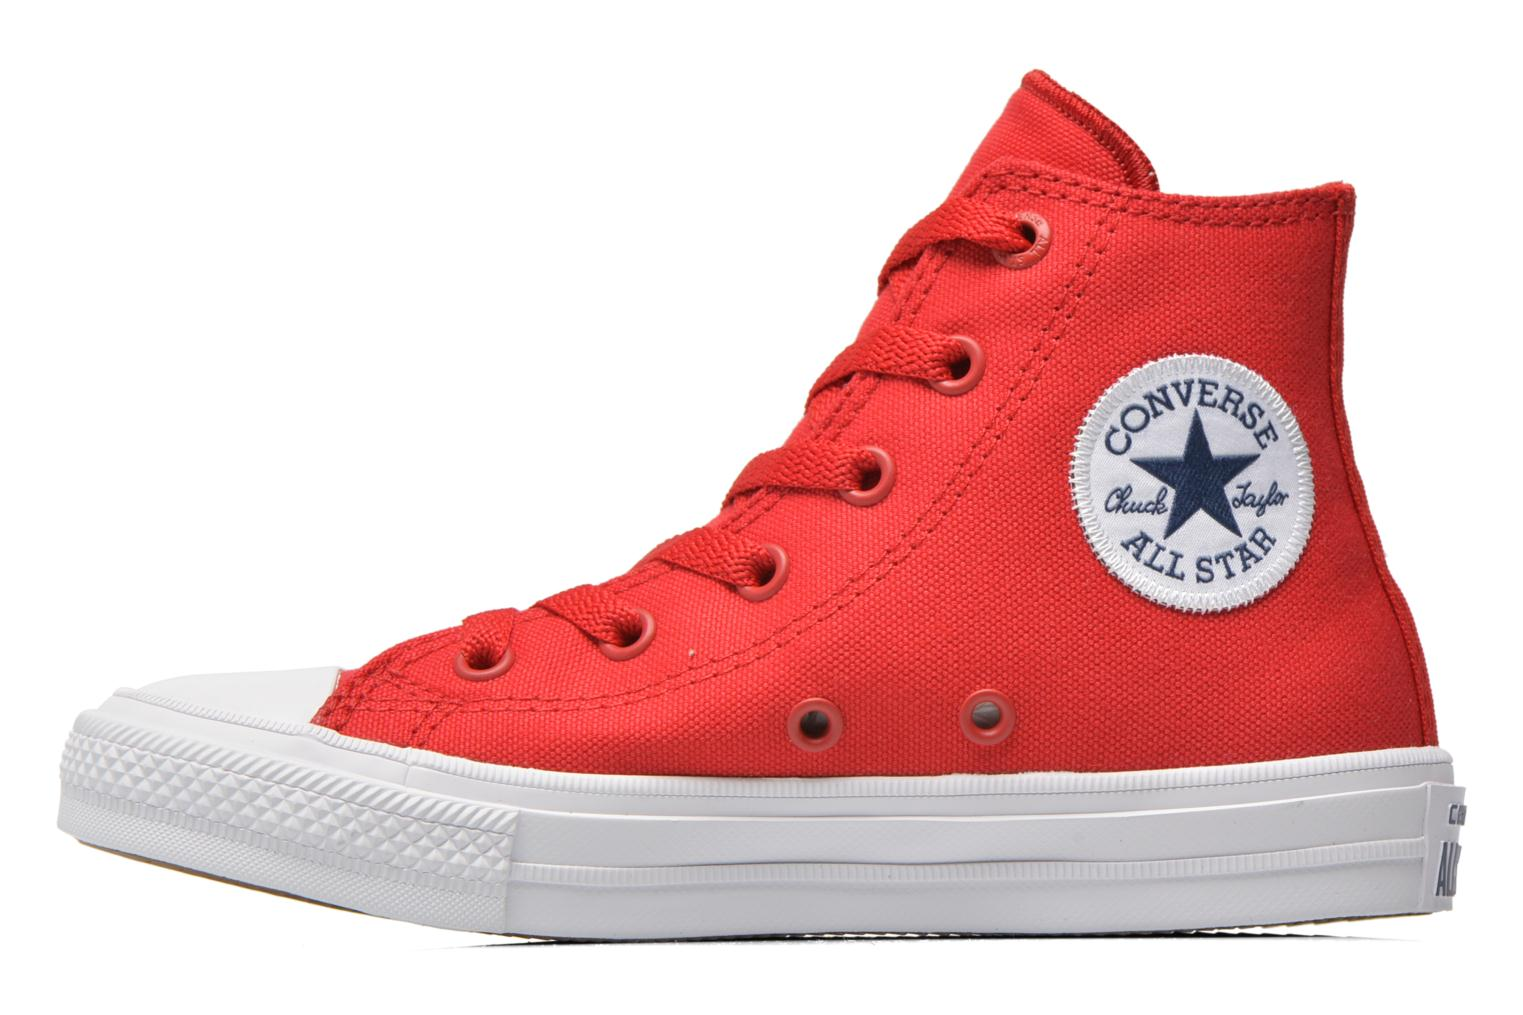 Chuck Taylor All Star II Hi Salsa Red White Navy